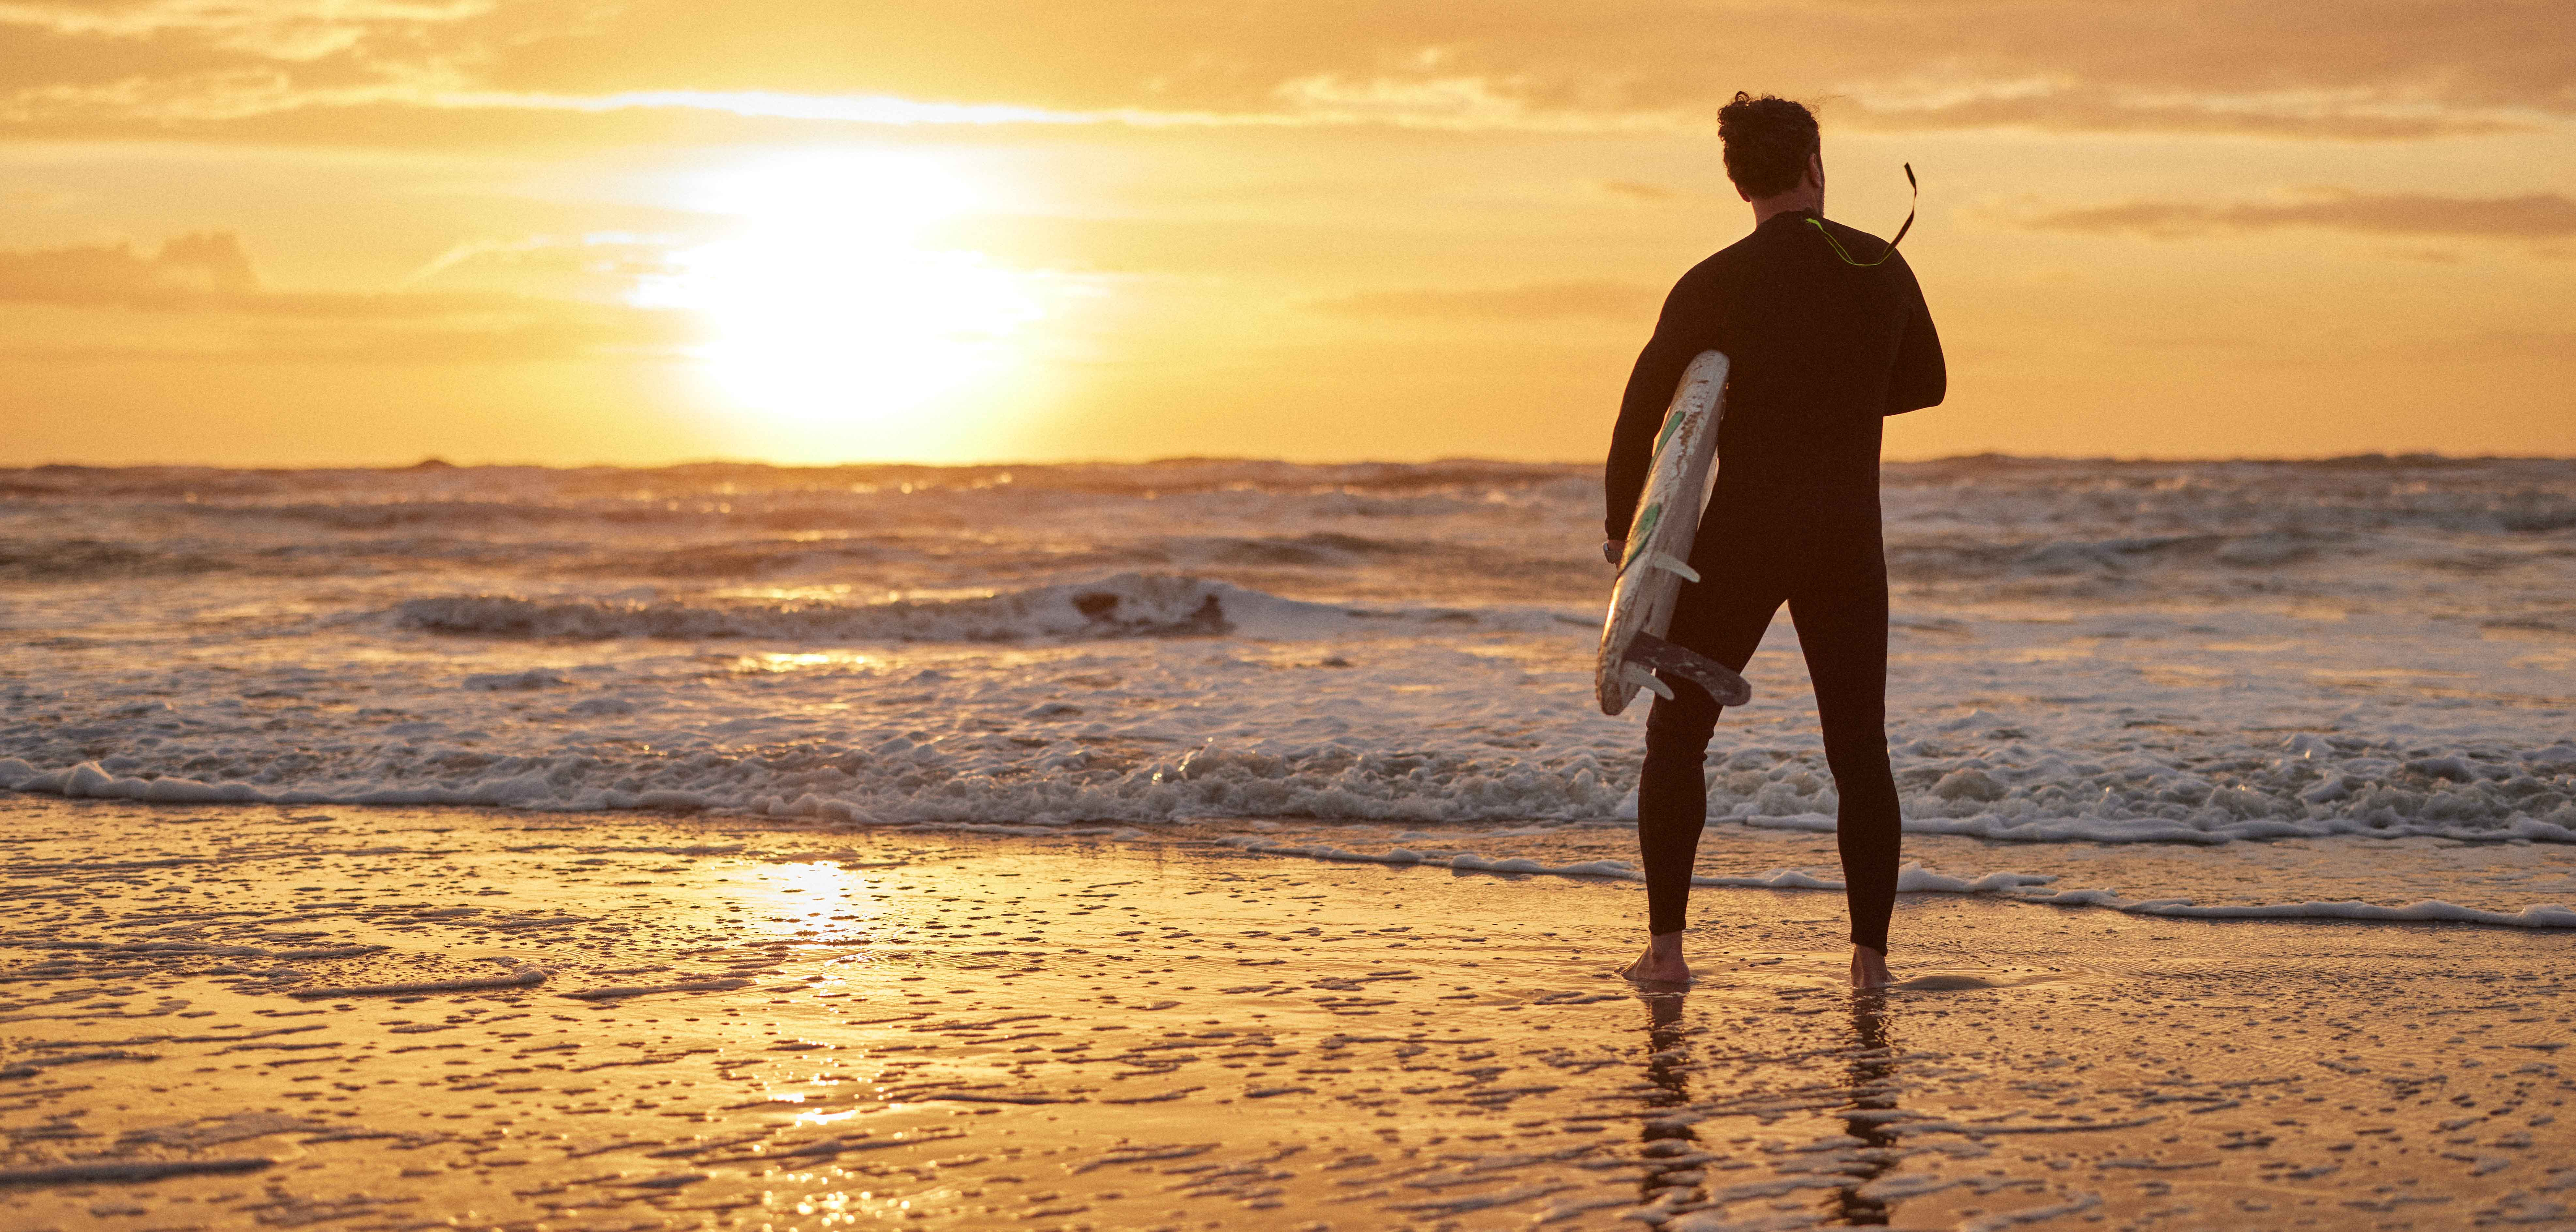 A surfer in his wetsuit analyzing the waves as the sun rises